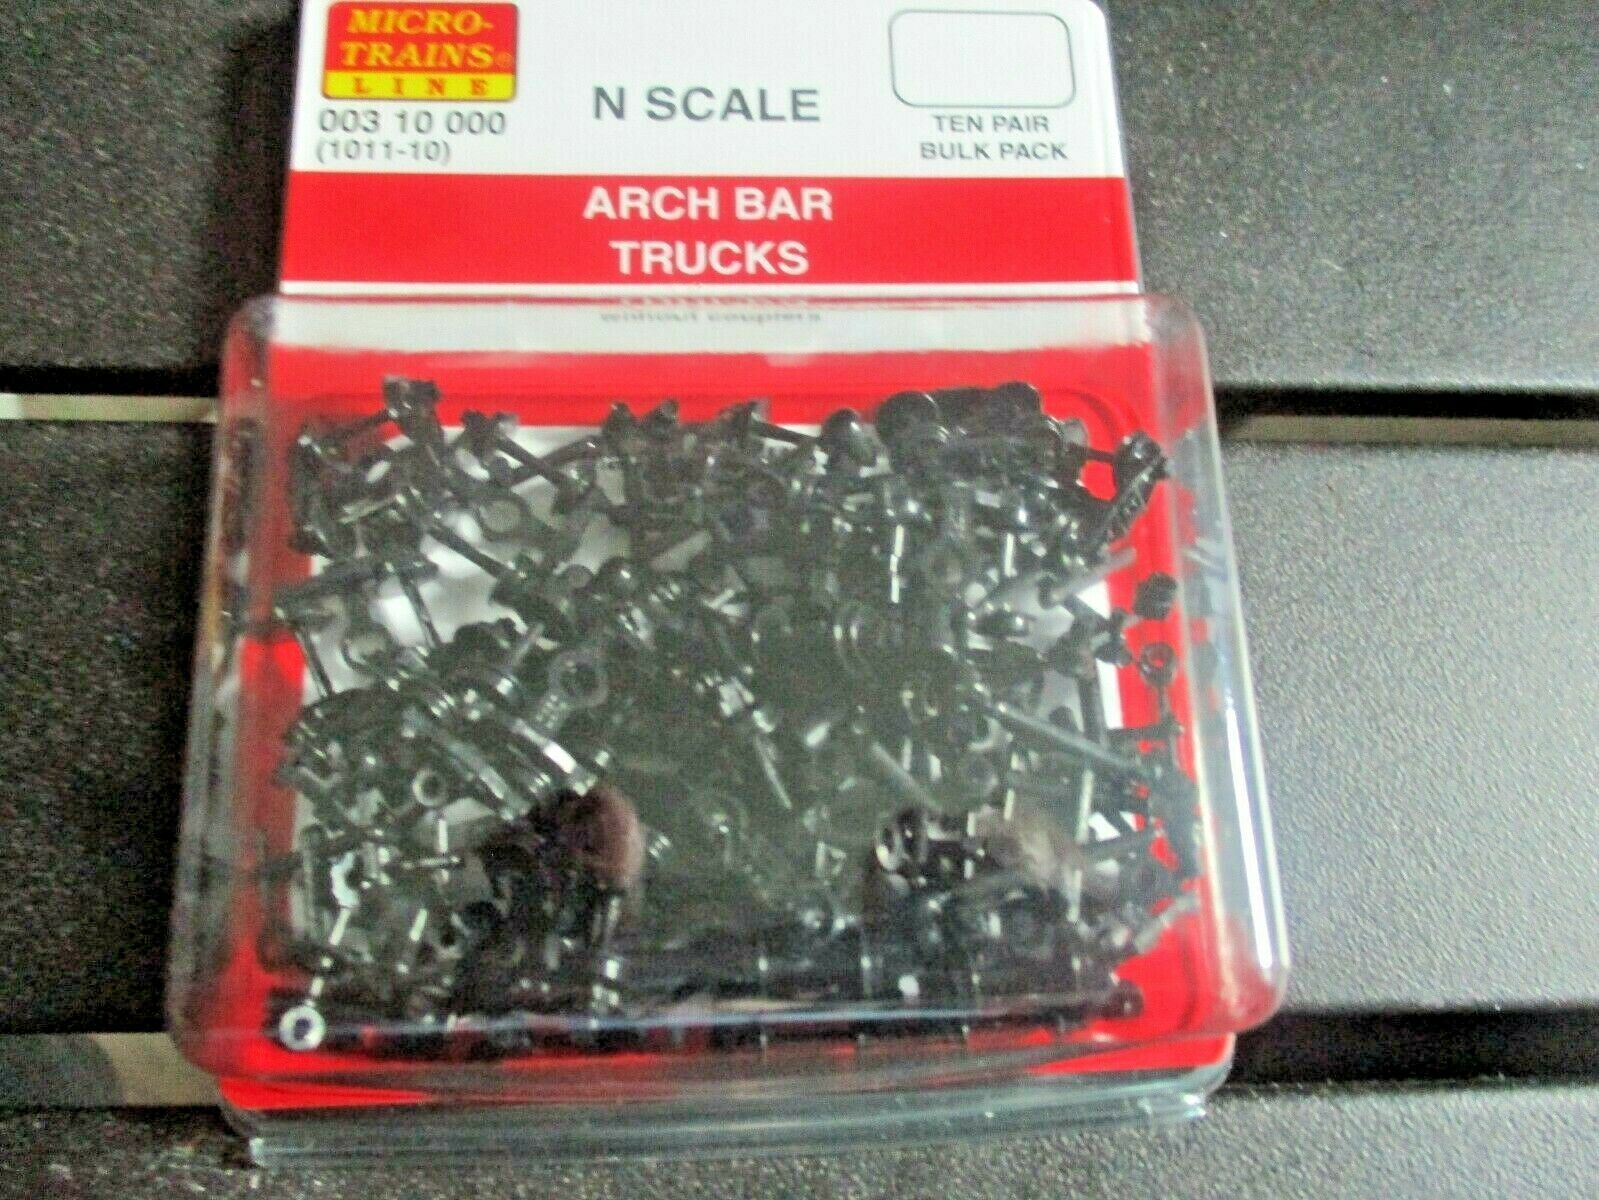 Micro-Trains Stock # 00310000 (1011-10)  Arch Bar Trucks Without Coupler 10 pair